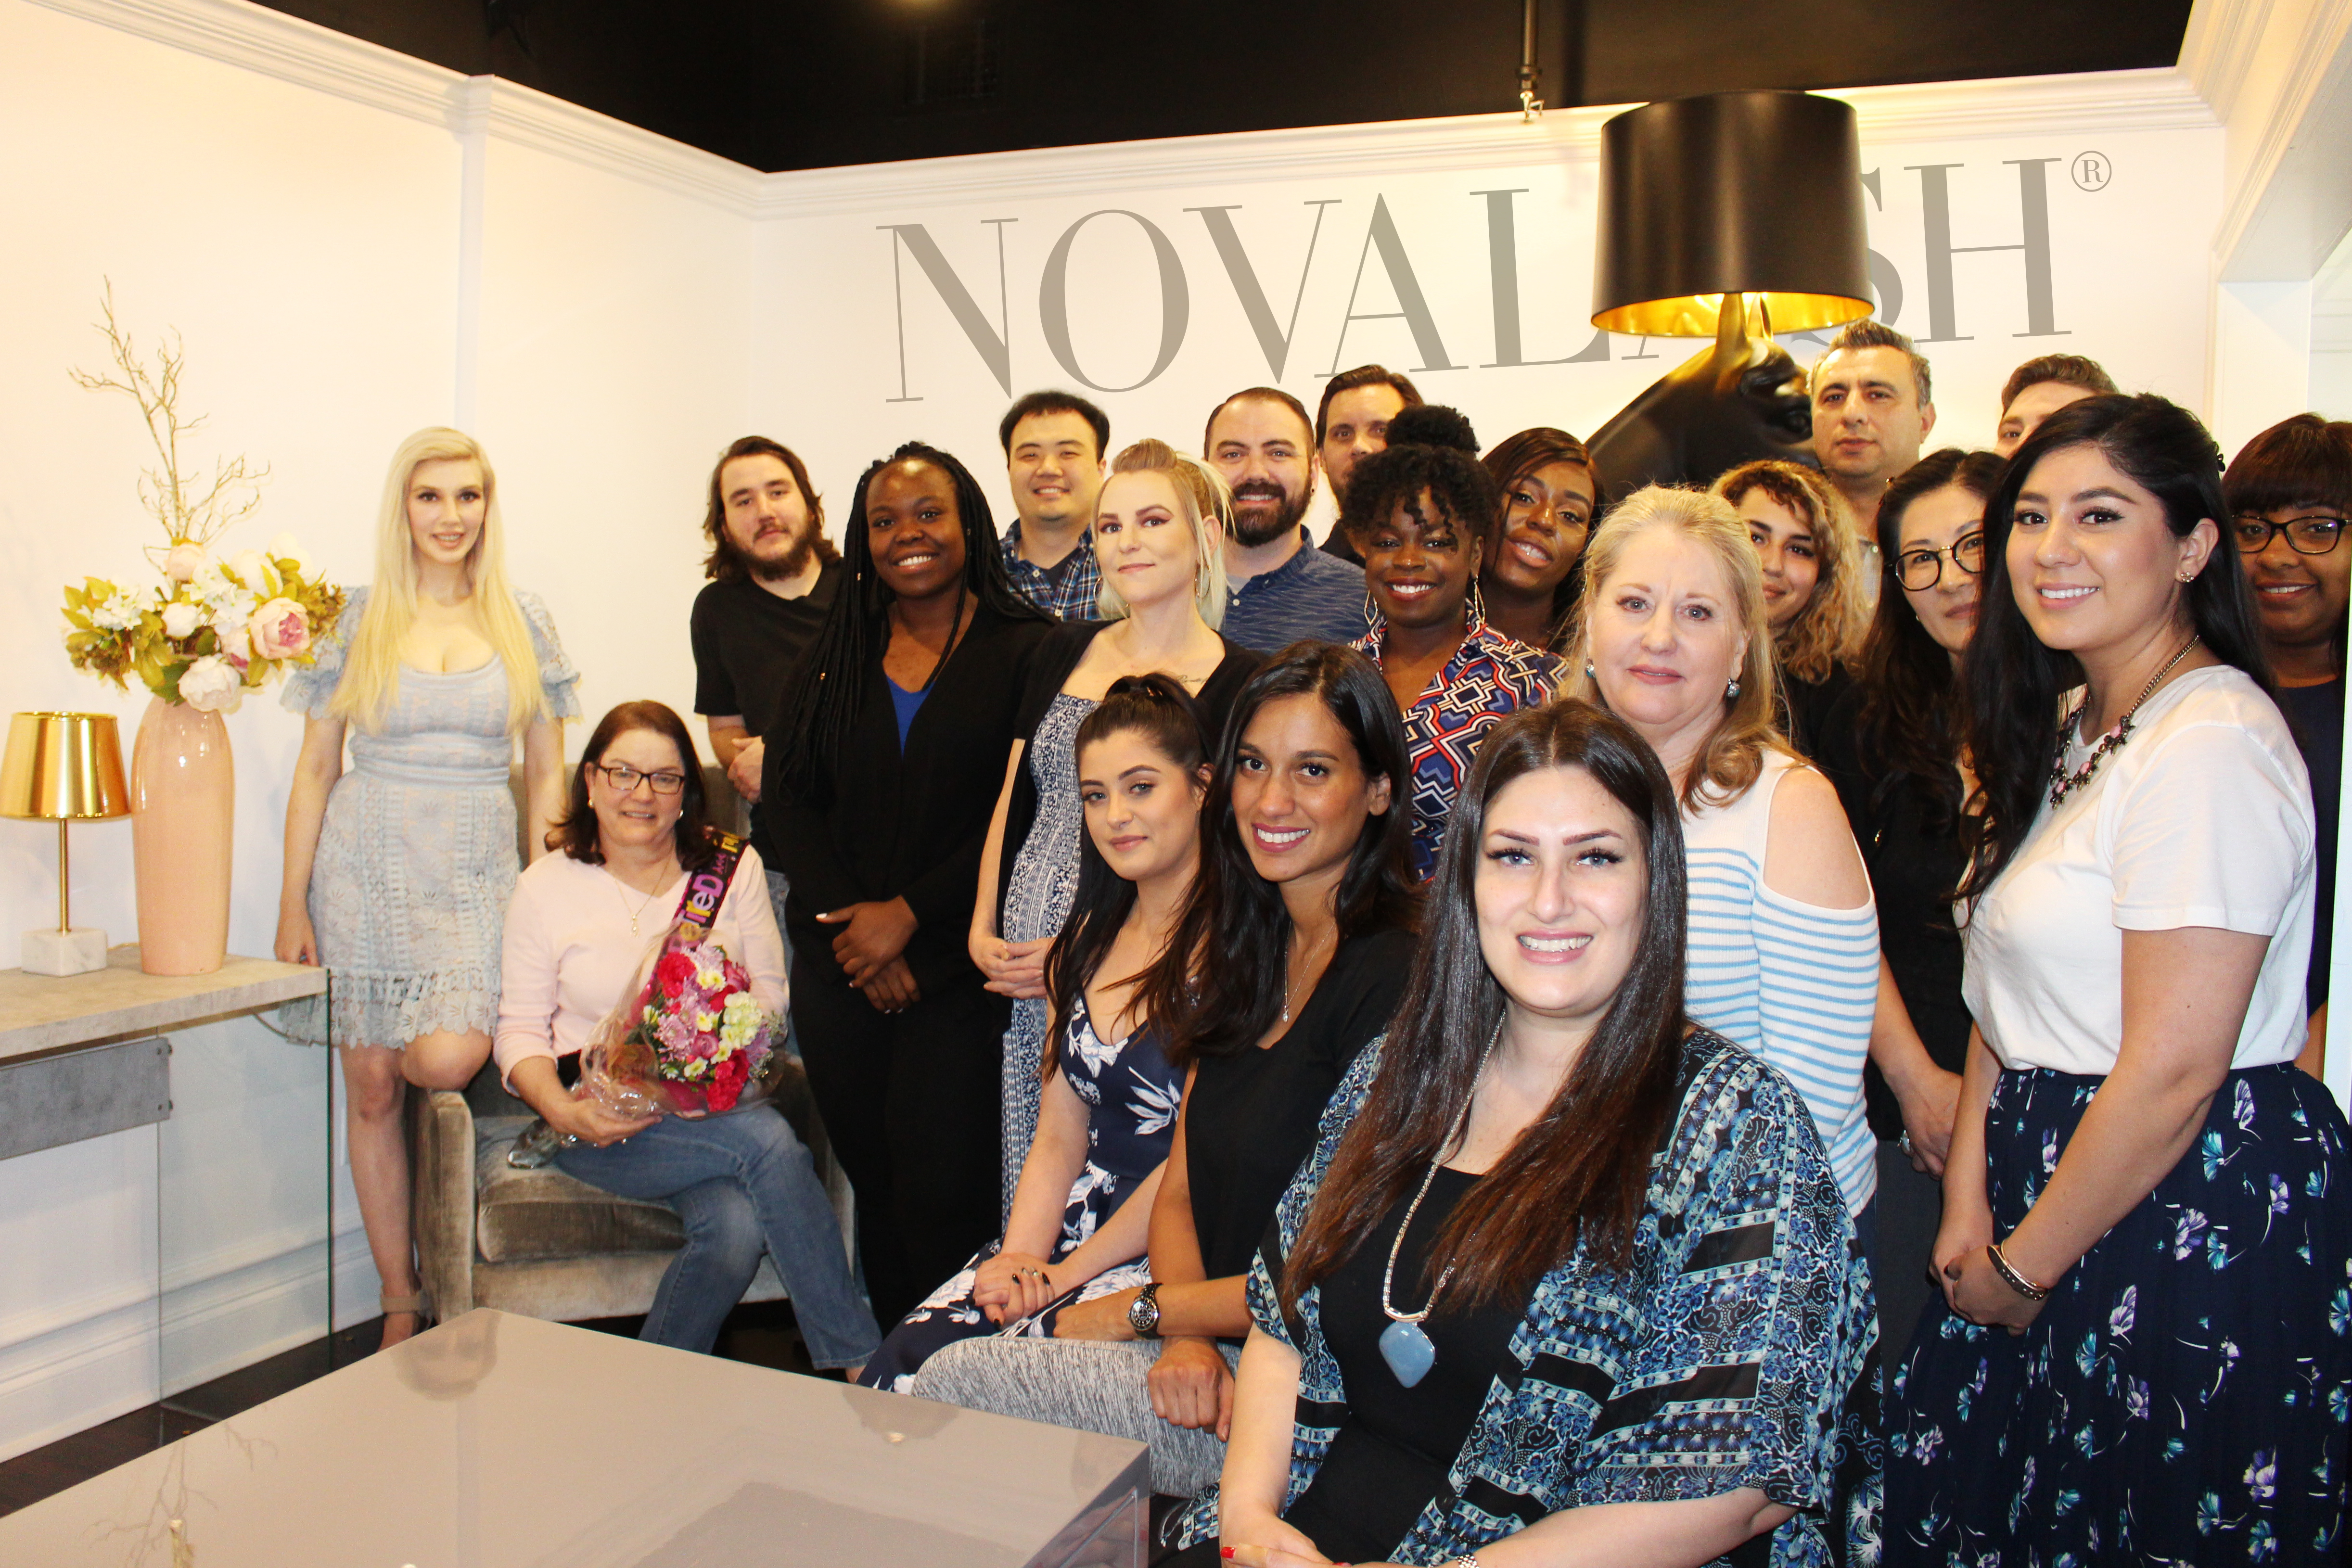 Loving Lashes: NovaLash COO Helped Make Lash Extensions a Beauty